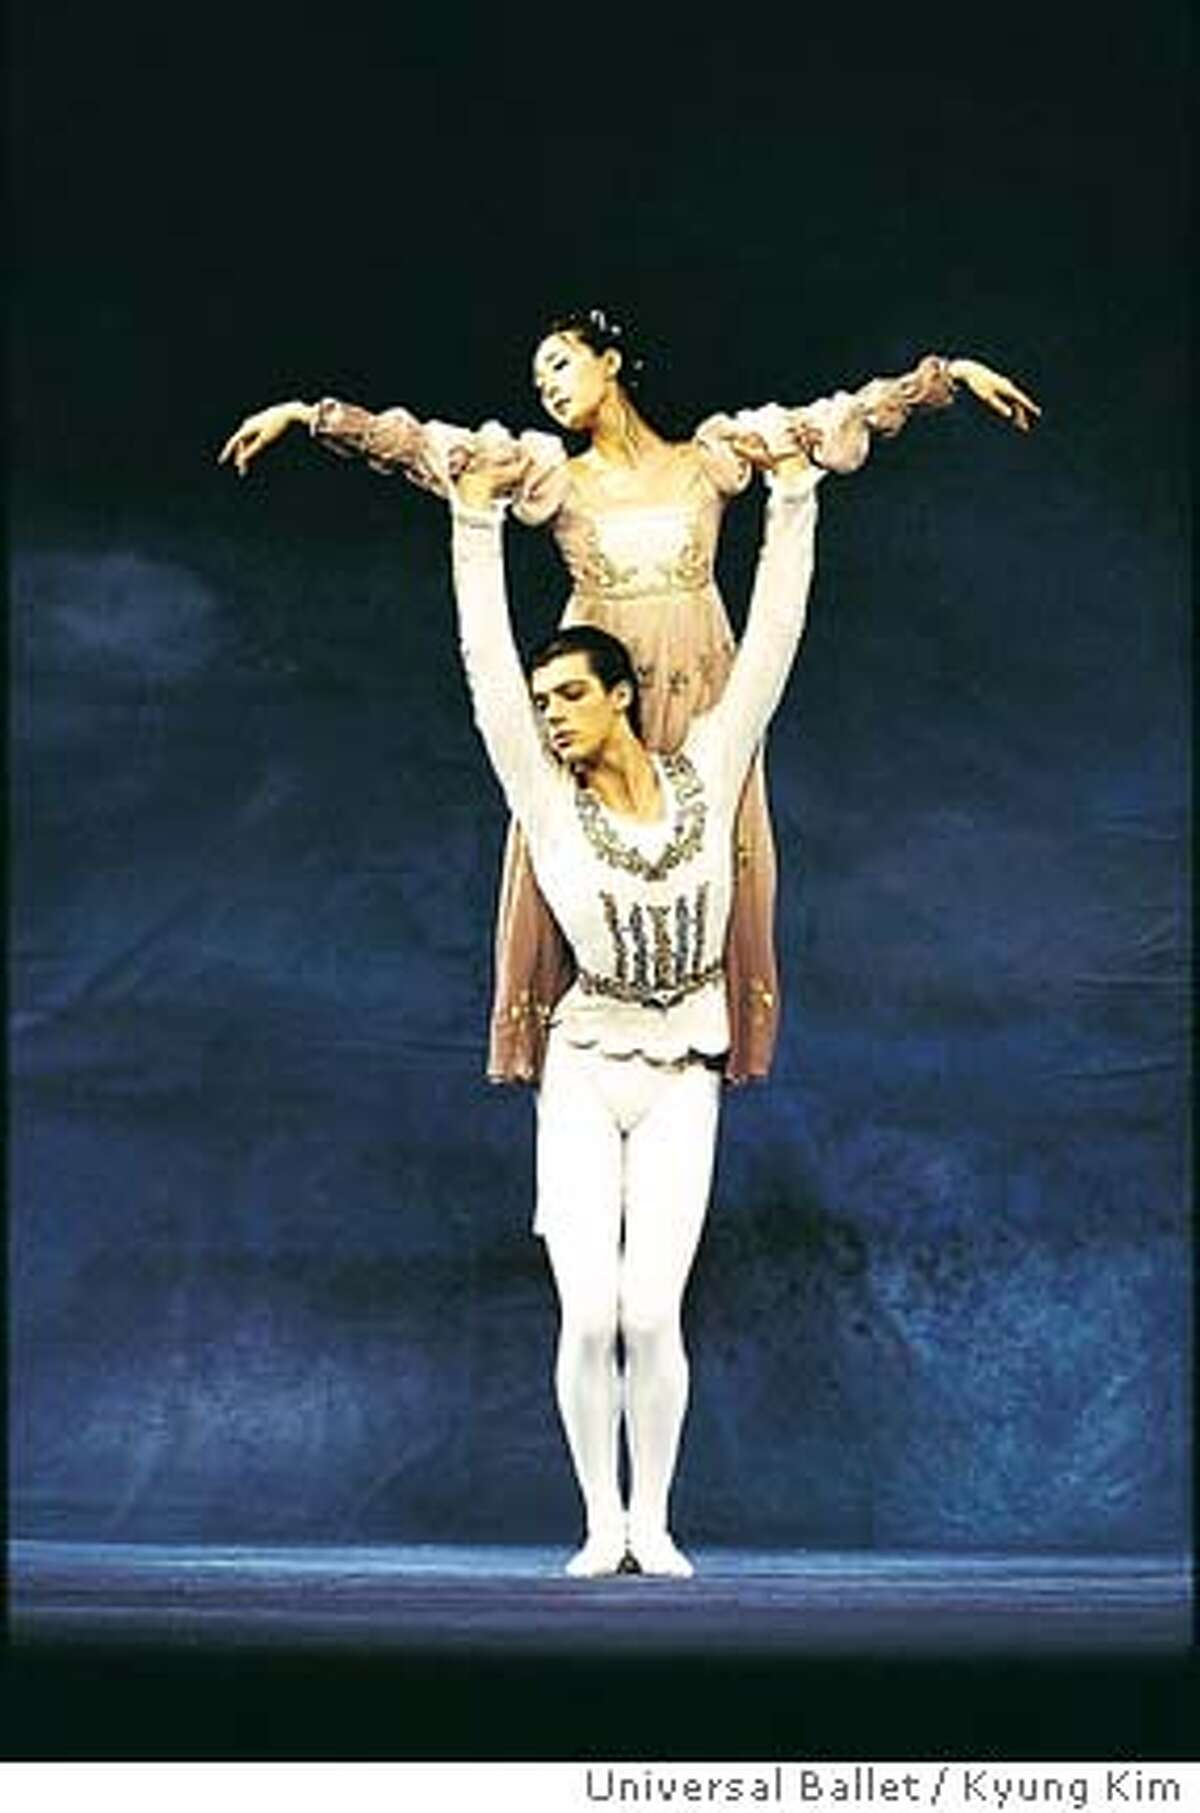 UNIVERSAL2.JPG Seh-Yun Kim and Artem Shipilevsky play Juliet and Romeo in Universal Ballet / Kyung Kim�s �Romeo and Juliet� Kyung Kim / HANDOUT